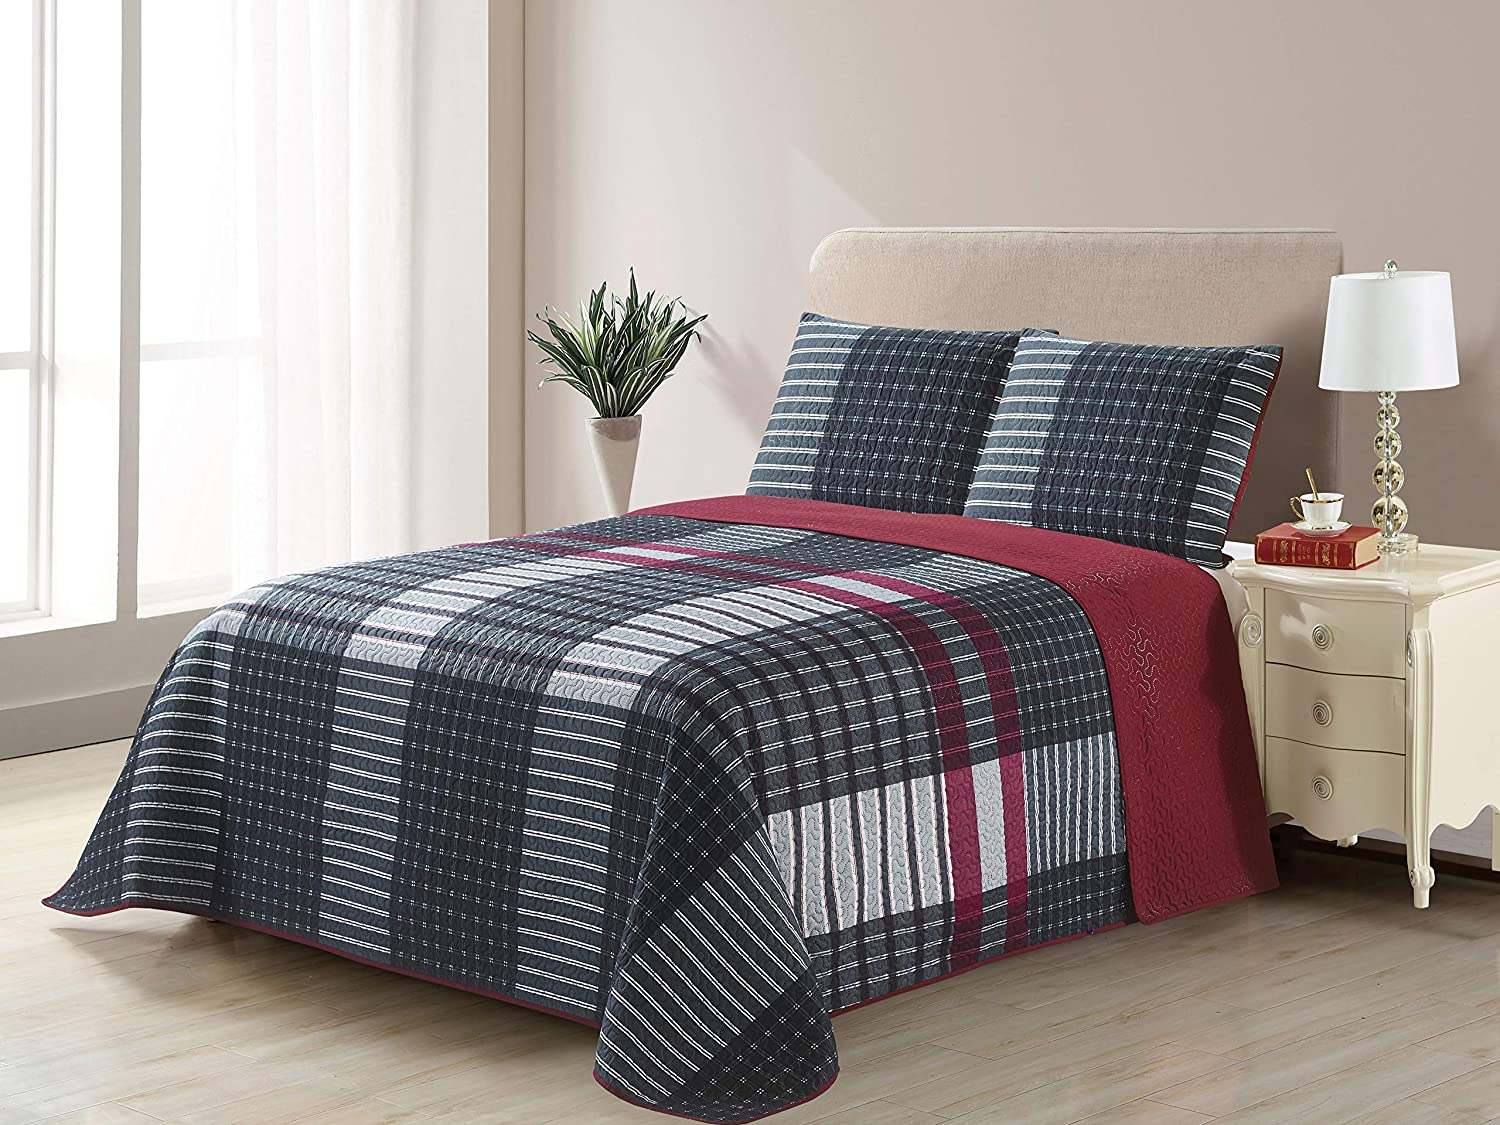 All American Collection New 3pc Plaid Printed Reversible Bedspread/Quilt Set (Full / Queen Size)